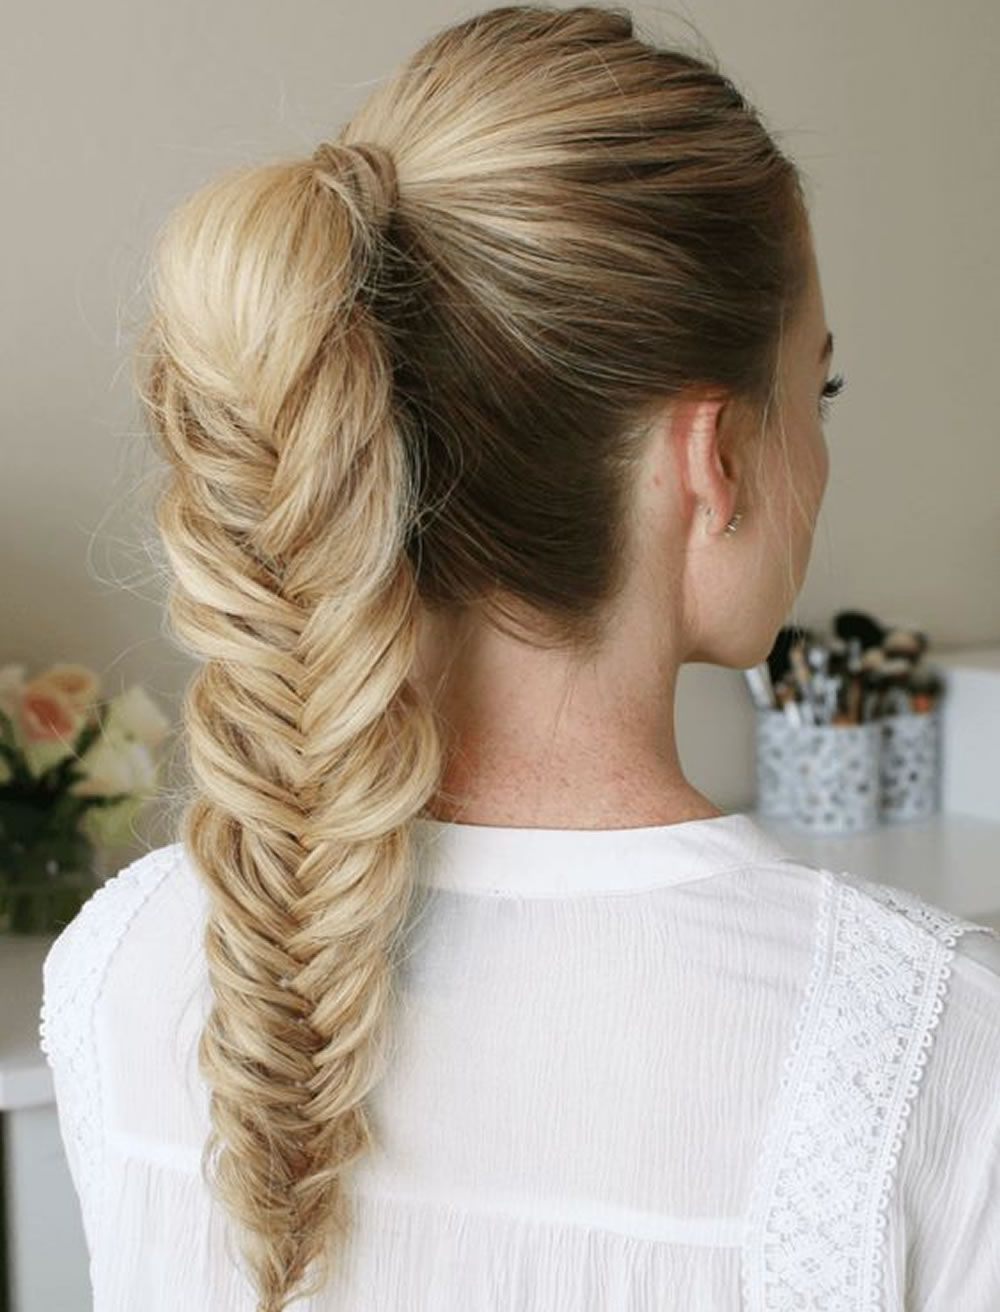 Best Hairstyle To Try For Thanksgiving Day In 2020 Hairstyles For School Fishtail Ponytail Hair Styles